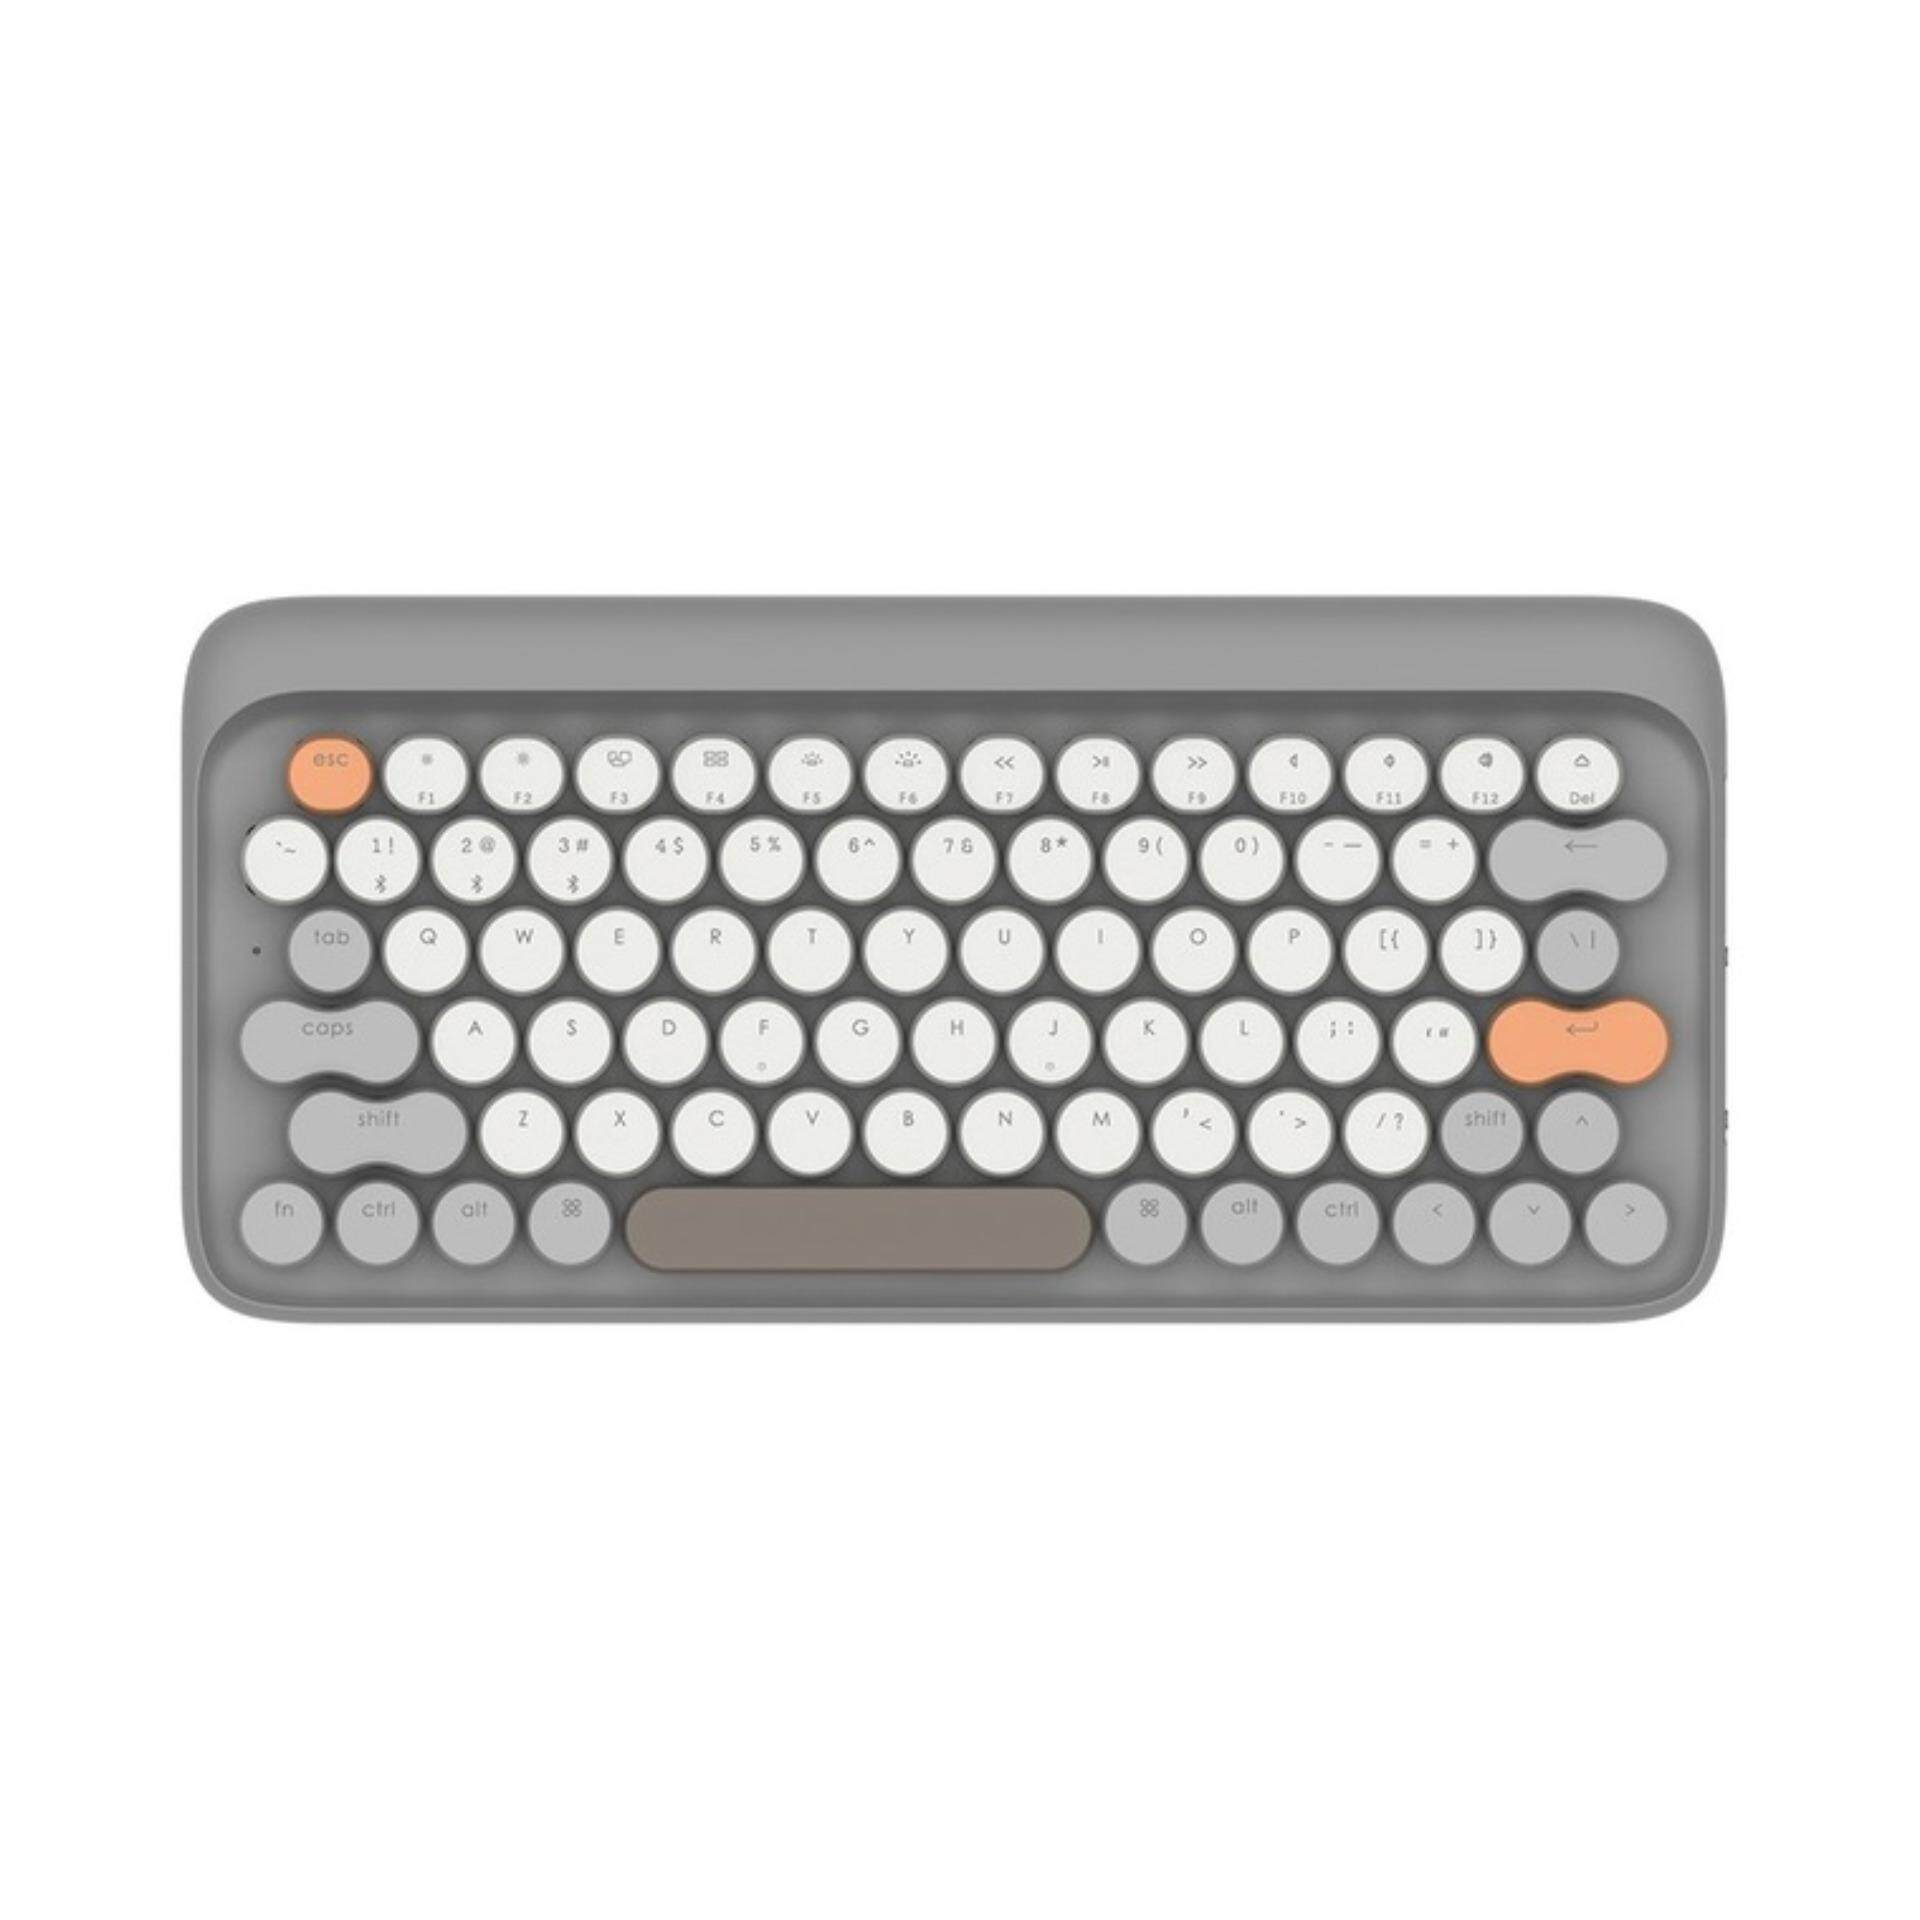 ยี่ห้อไหนดี  เพชรบุรี Lofree Four Seasons Mechanical Keyboard Autumnal Grey (Autumn)